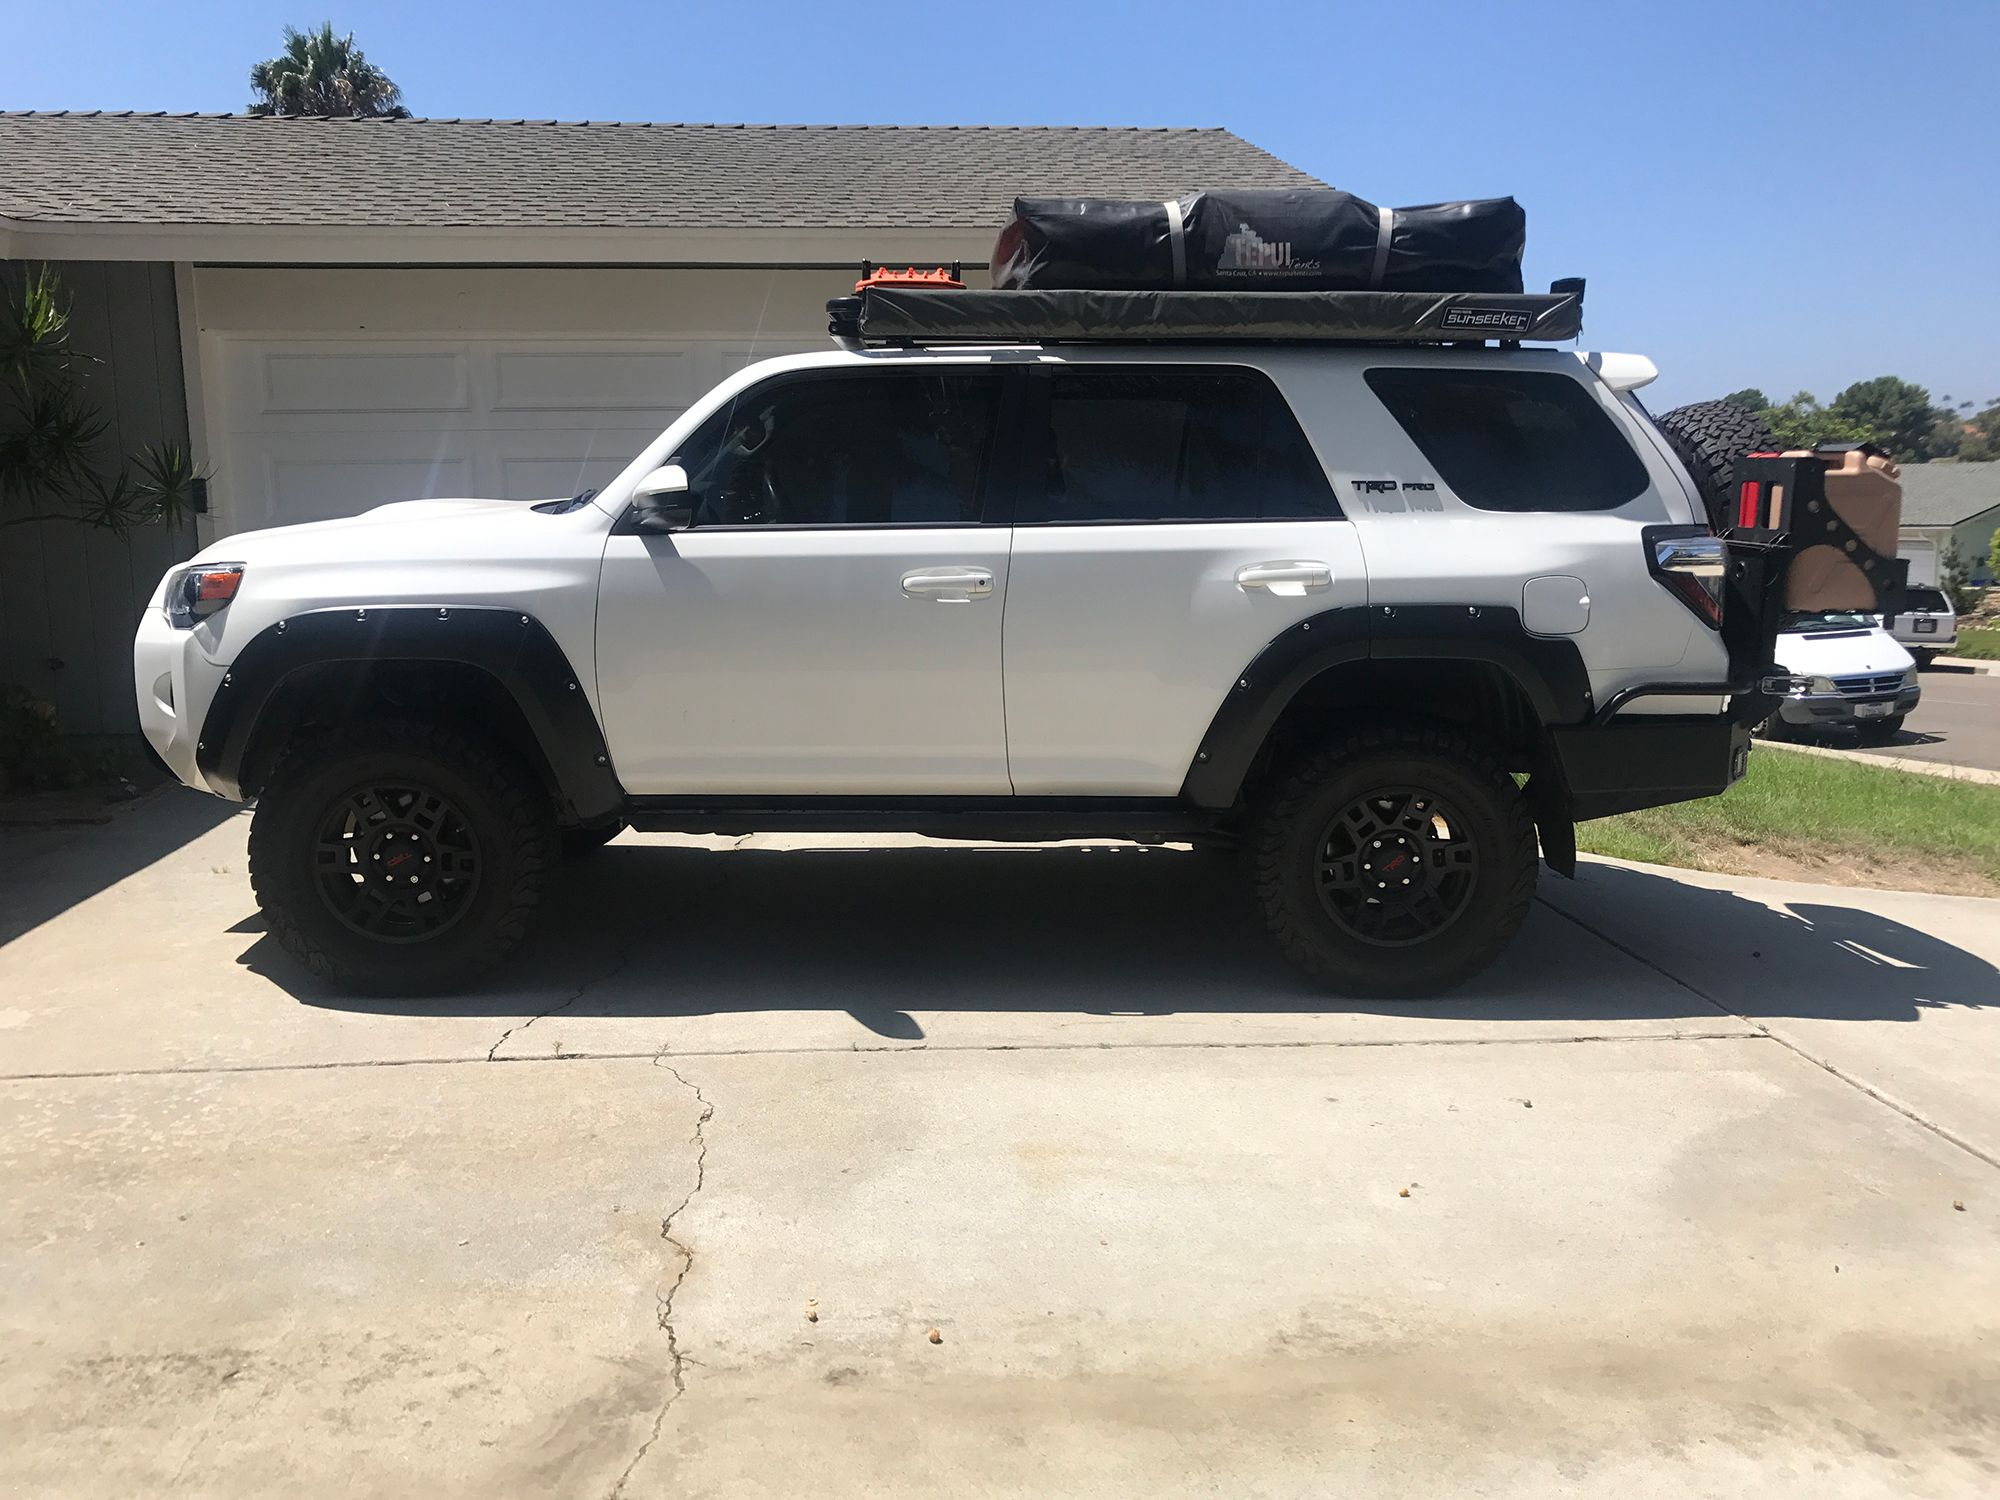 FS 2016 TRDPro White 5th gen Socal